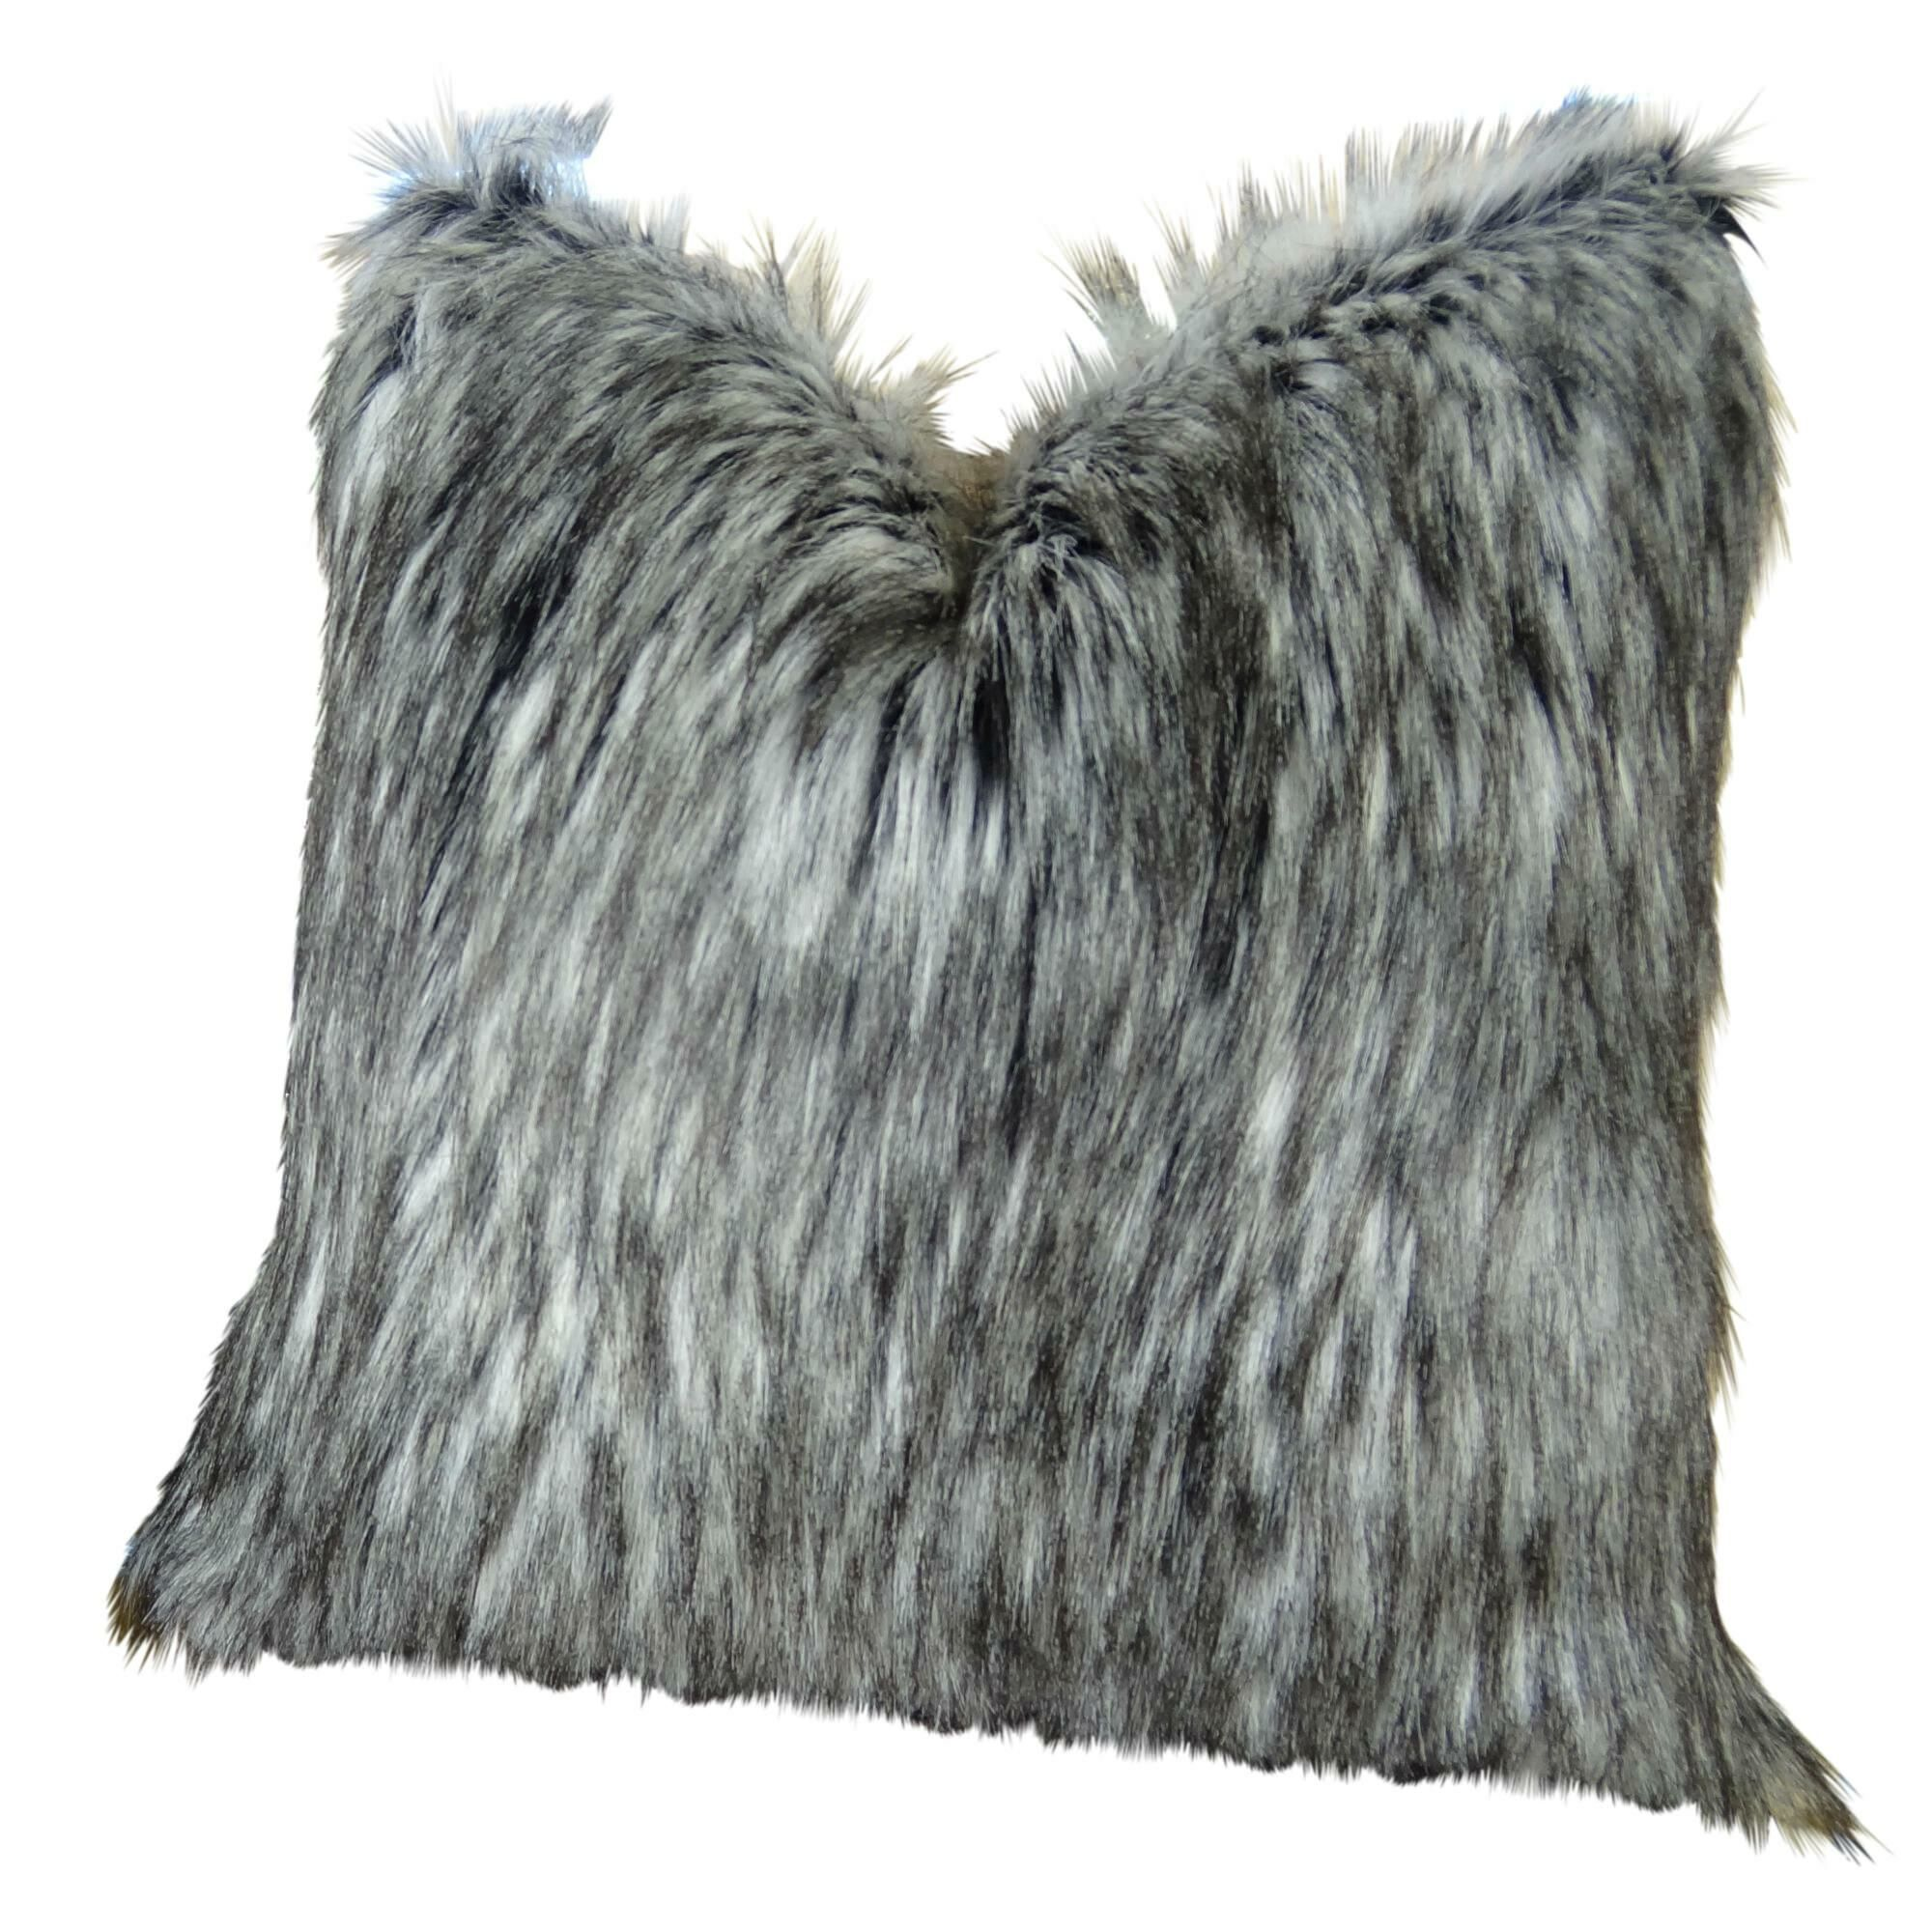 Wagaman Siberian Husky Faux Fur Pillow Fill Material: 95/5 Feather/Down, Size: 12